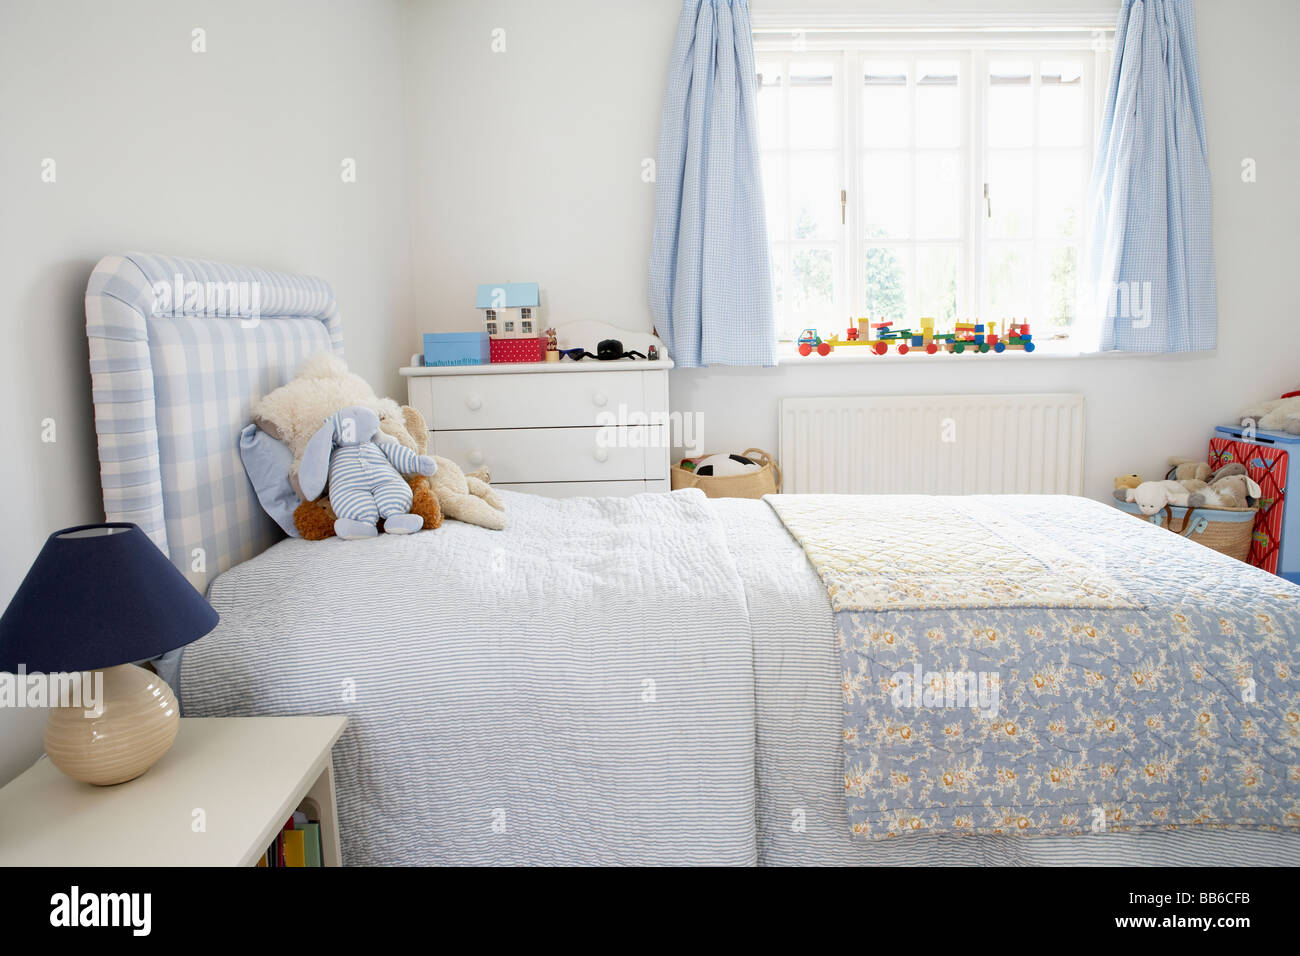 Interior Of Child's Bedroom - Stock Image